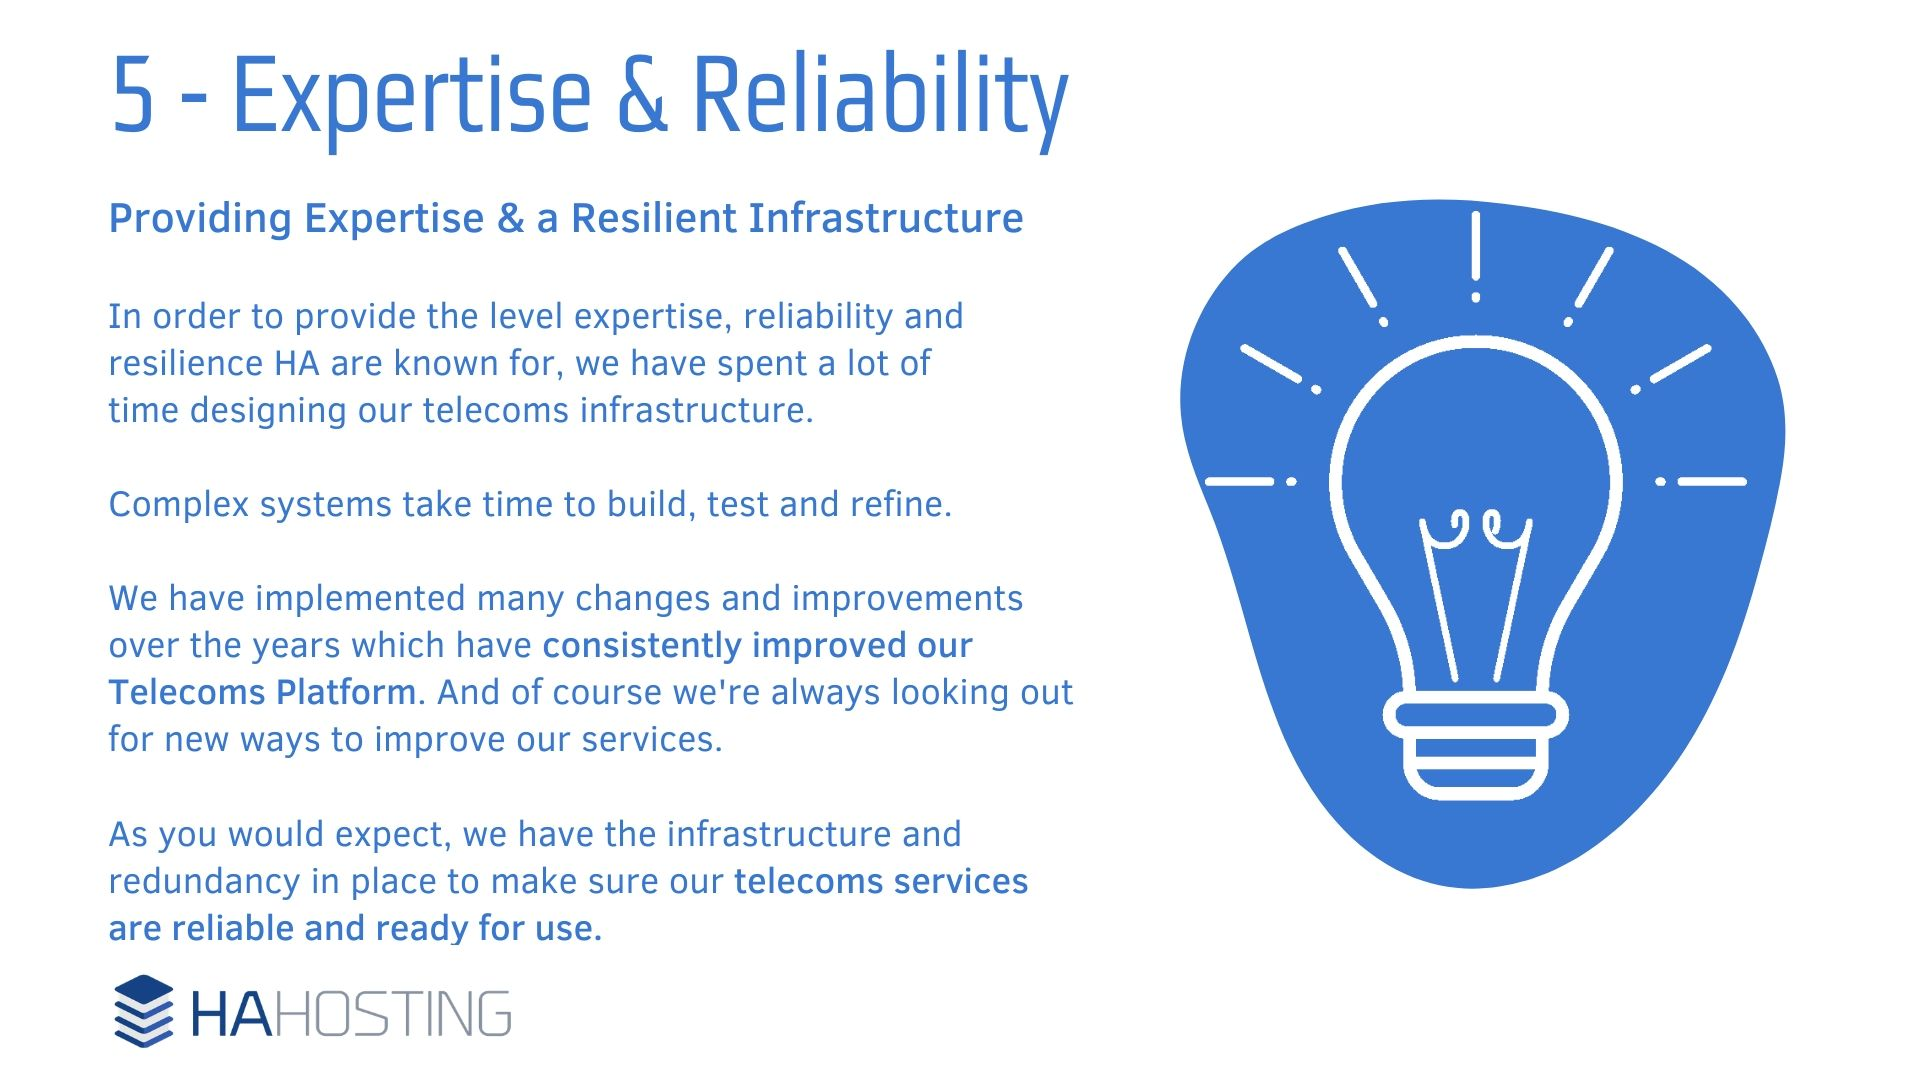 Expertise and Reliability - Providing Expertise & a Resilient Infrastructure In order to provide the level expertise, reliability and resilience HA are known for, we have spent a lot of time designing our telecoms infrastructure. Complex systems take time to build, test and refine. We have implemented many changes and improvements over the years which have consistently improved our Telecoms Platform. And of course we're always looking out for new ways to improve our services. As you would expect, we have the infrastructure and redundancy in place to make sure our telecoms services are reliable and ready for use.